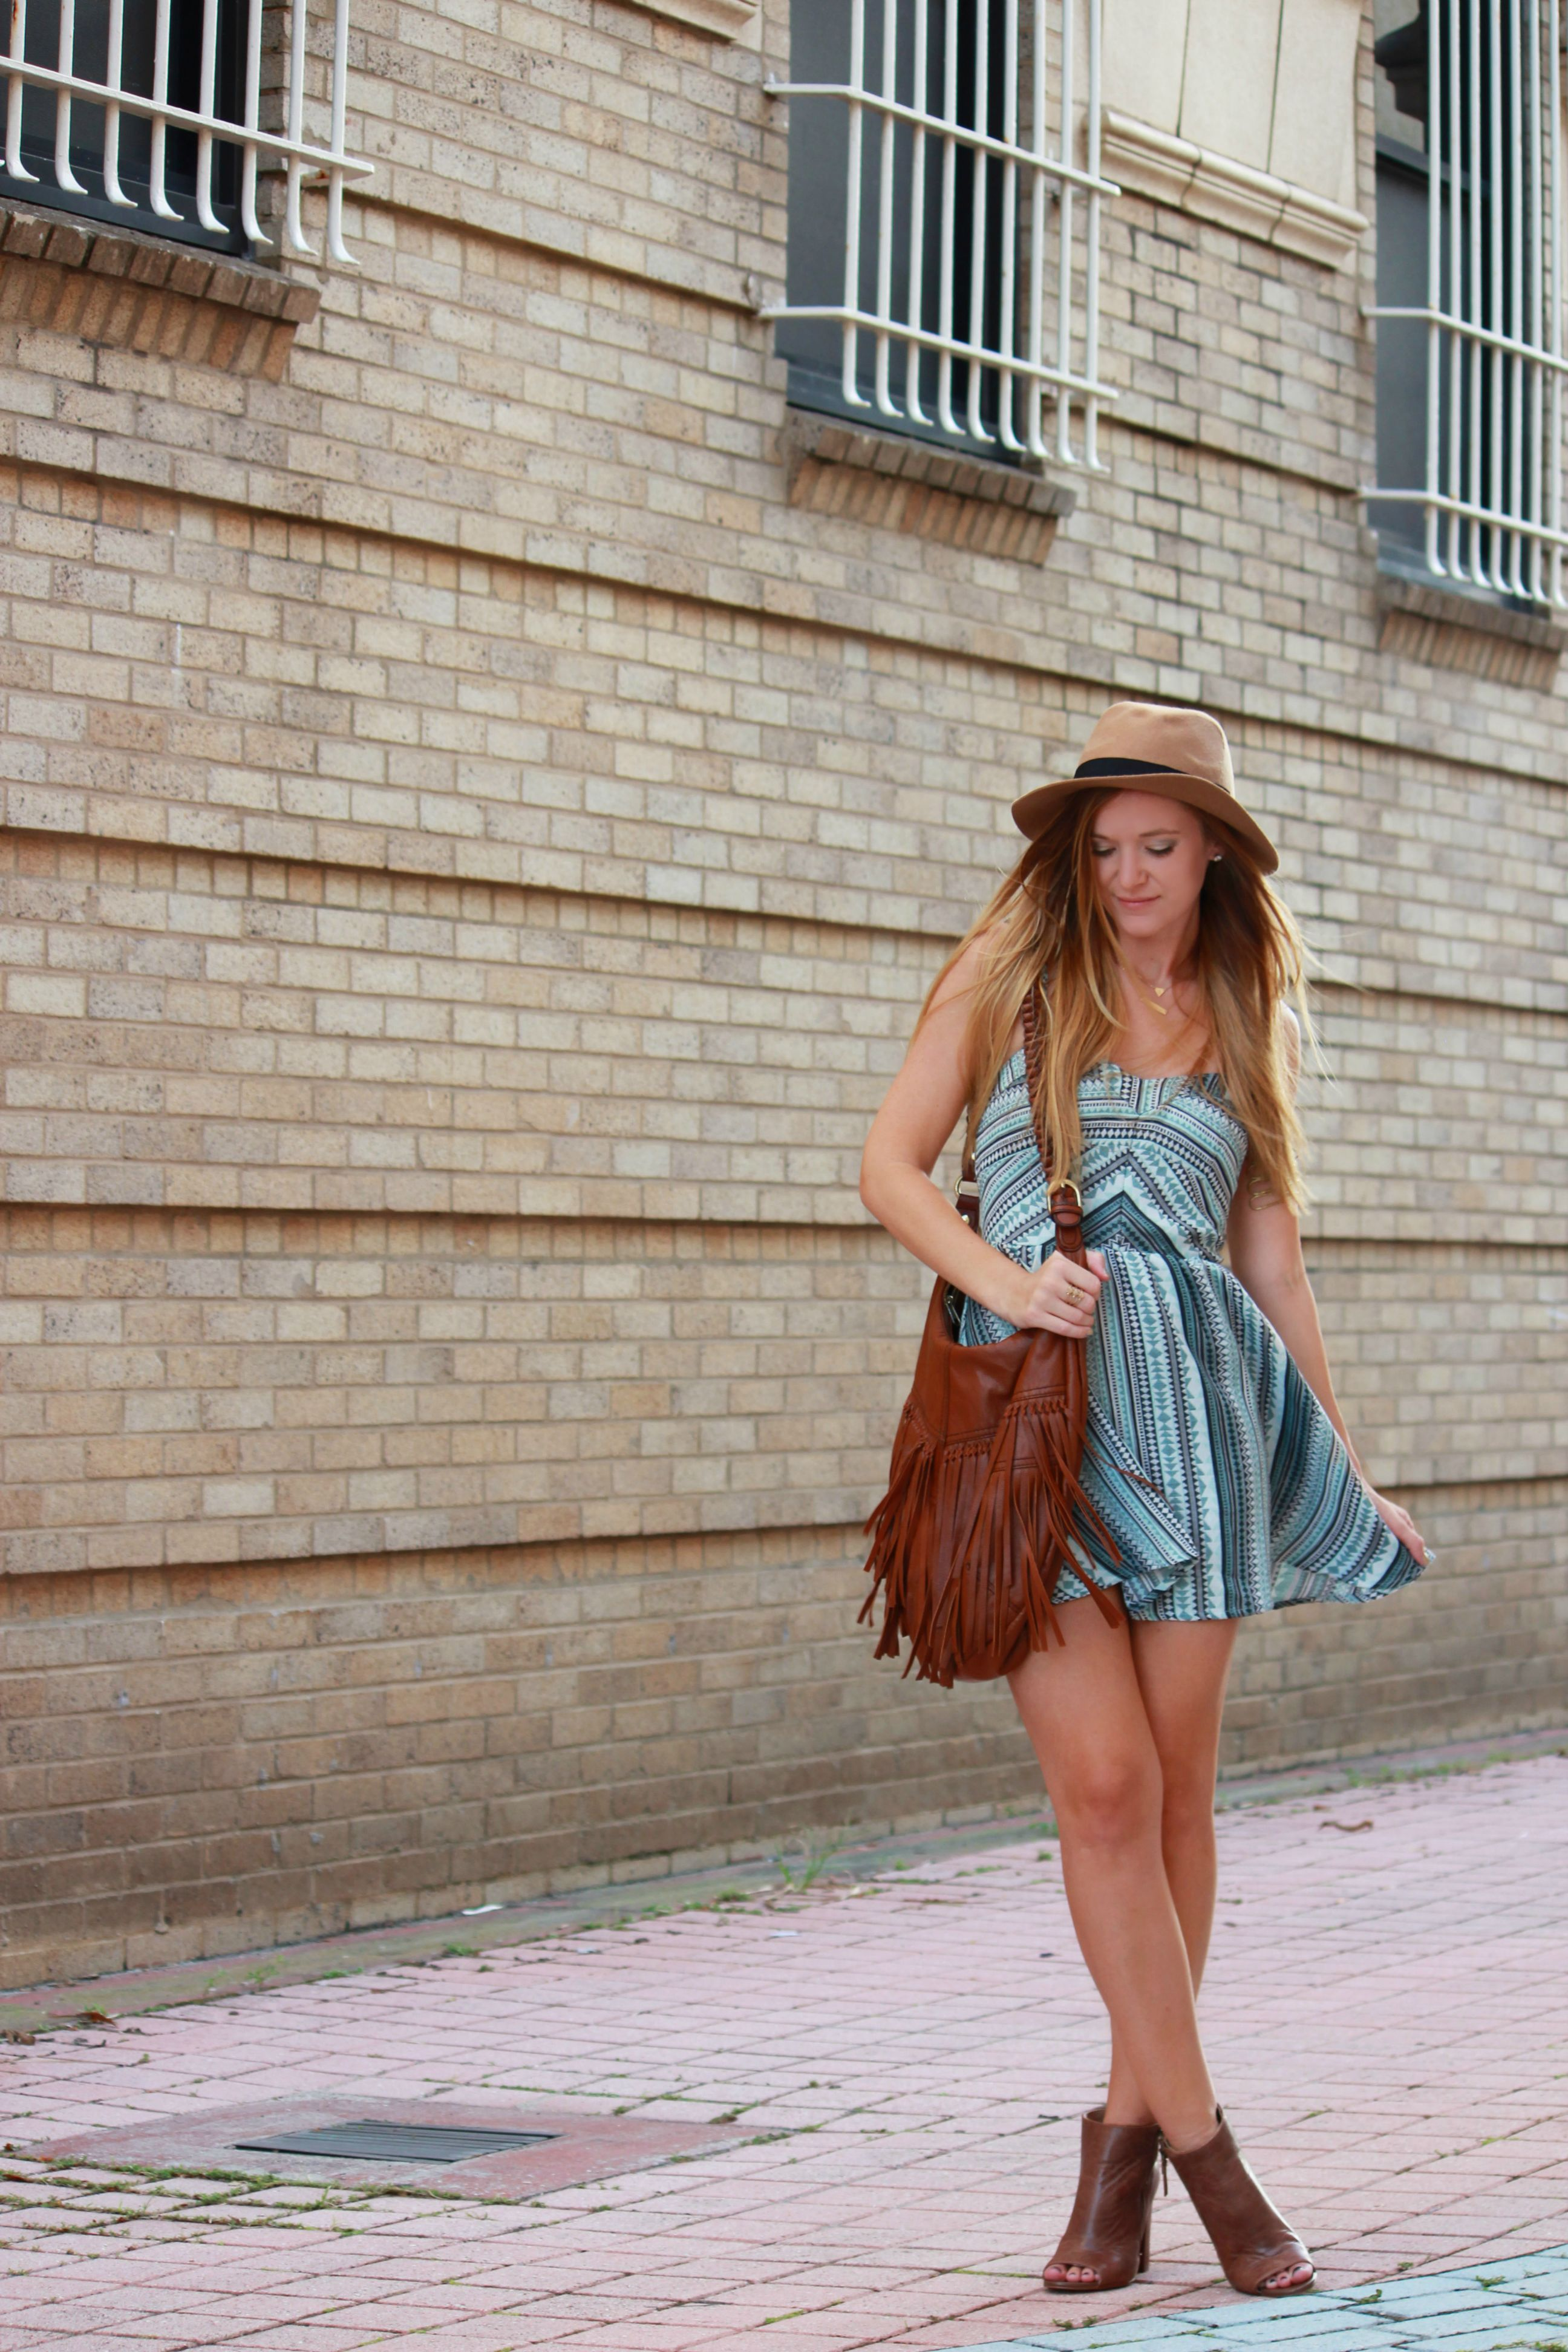 aeropostale dress, striped sundress, layered and long necklace, dsw boots, open toe booties, fringe bag, fringe purse, casual summer outfit, fall transition outfit